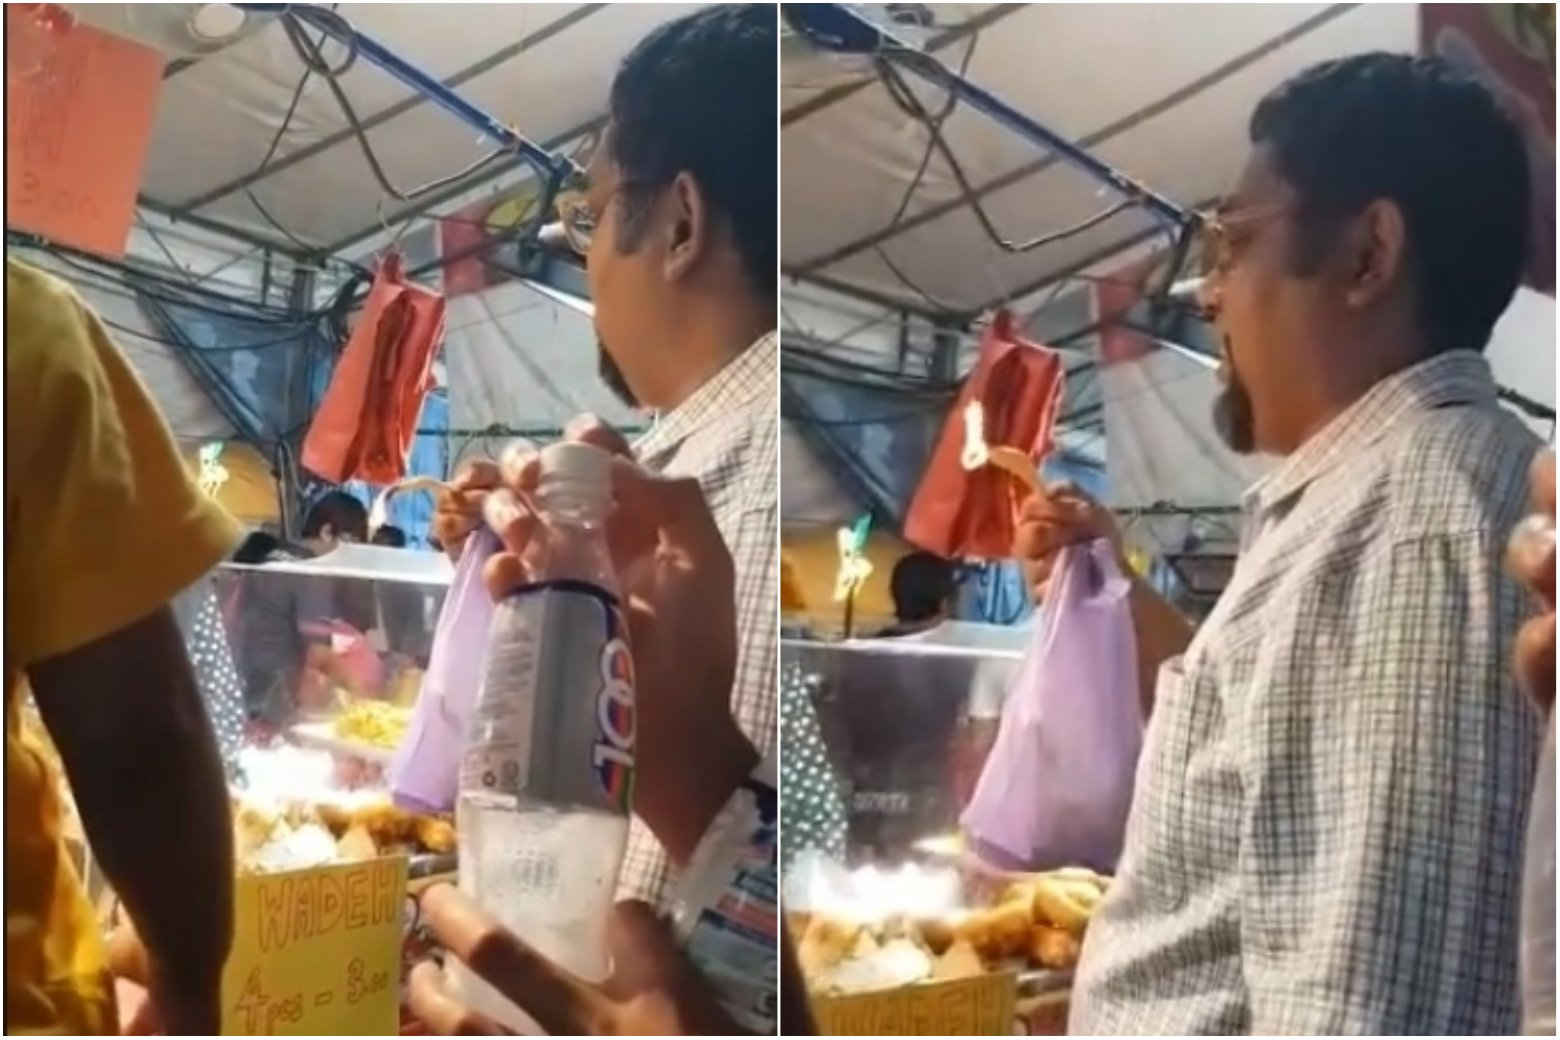 Claims of 'plastic' keropok being sold at Hari Raya Bazaar false: AVA https://t.co/vkU1XeWKQz https://t.co/mG0azc5iGy